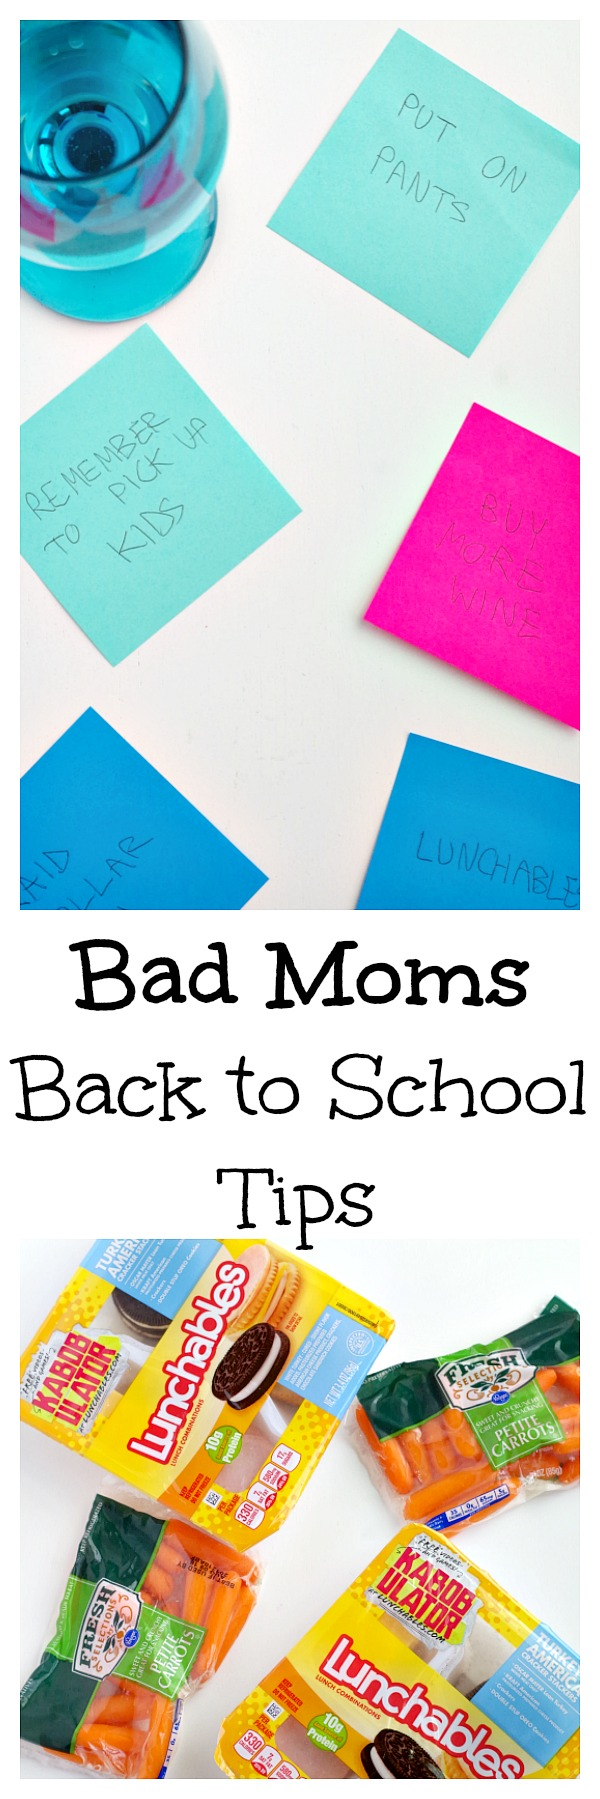 Bad Moms Back to School Tips! You don't have to do it all here are some tips and tricks to make back to school easy for the bad moms